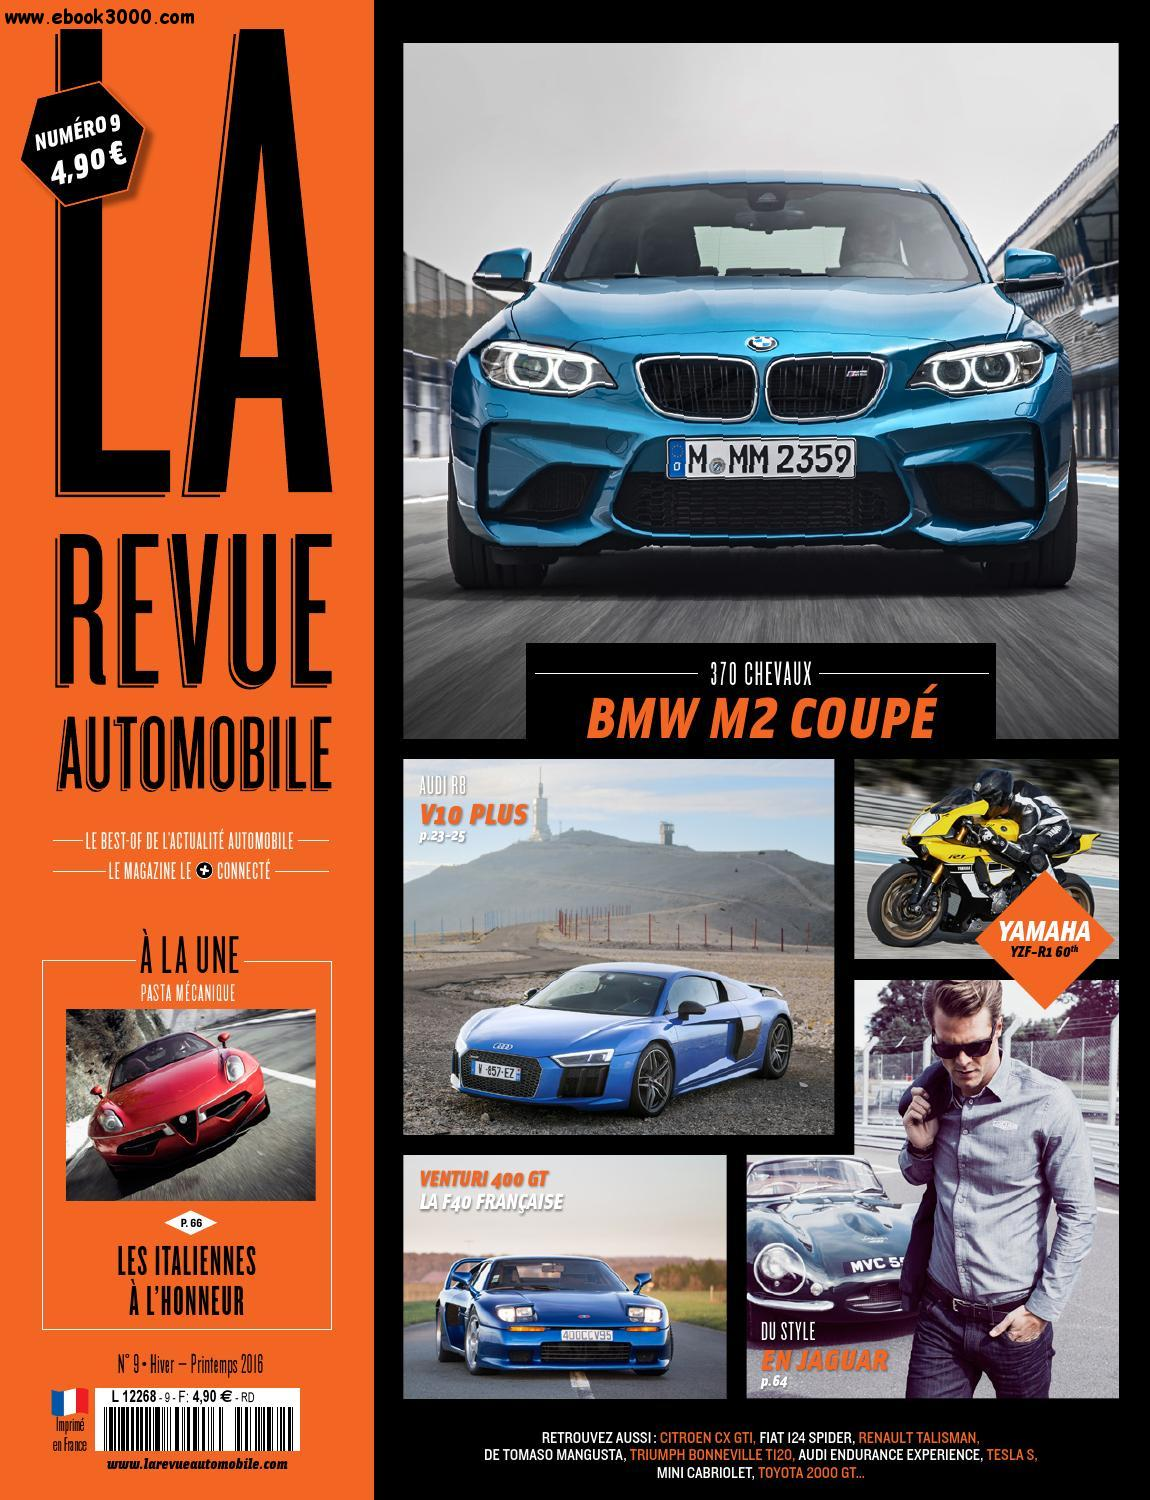 La Revue Automobile - Hiver/Printemps 2016 free download